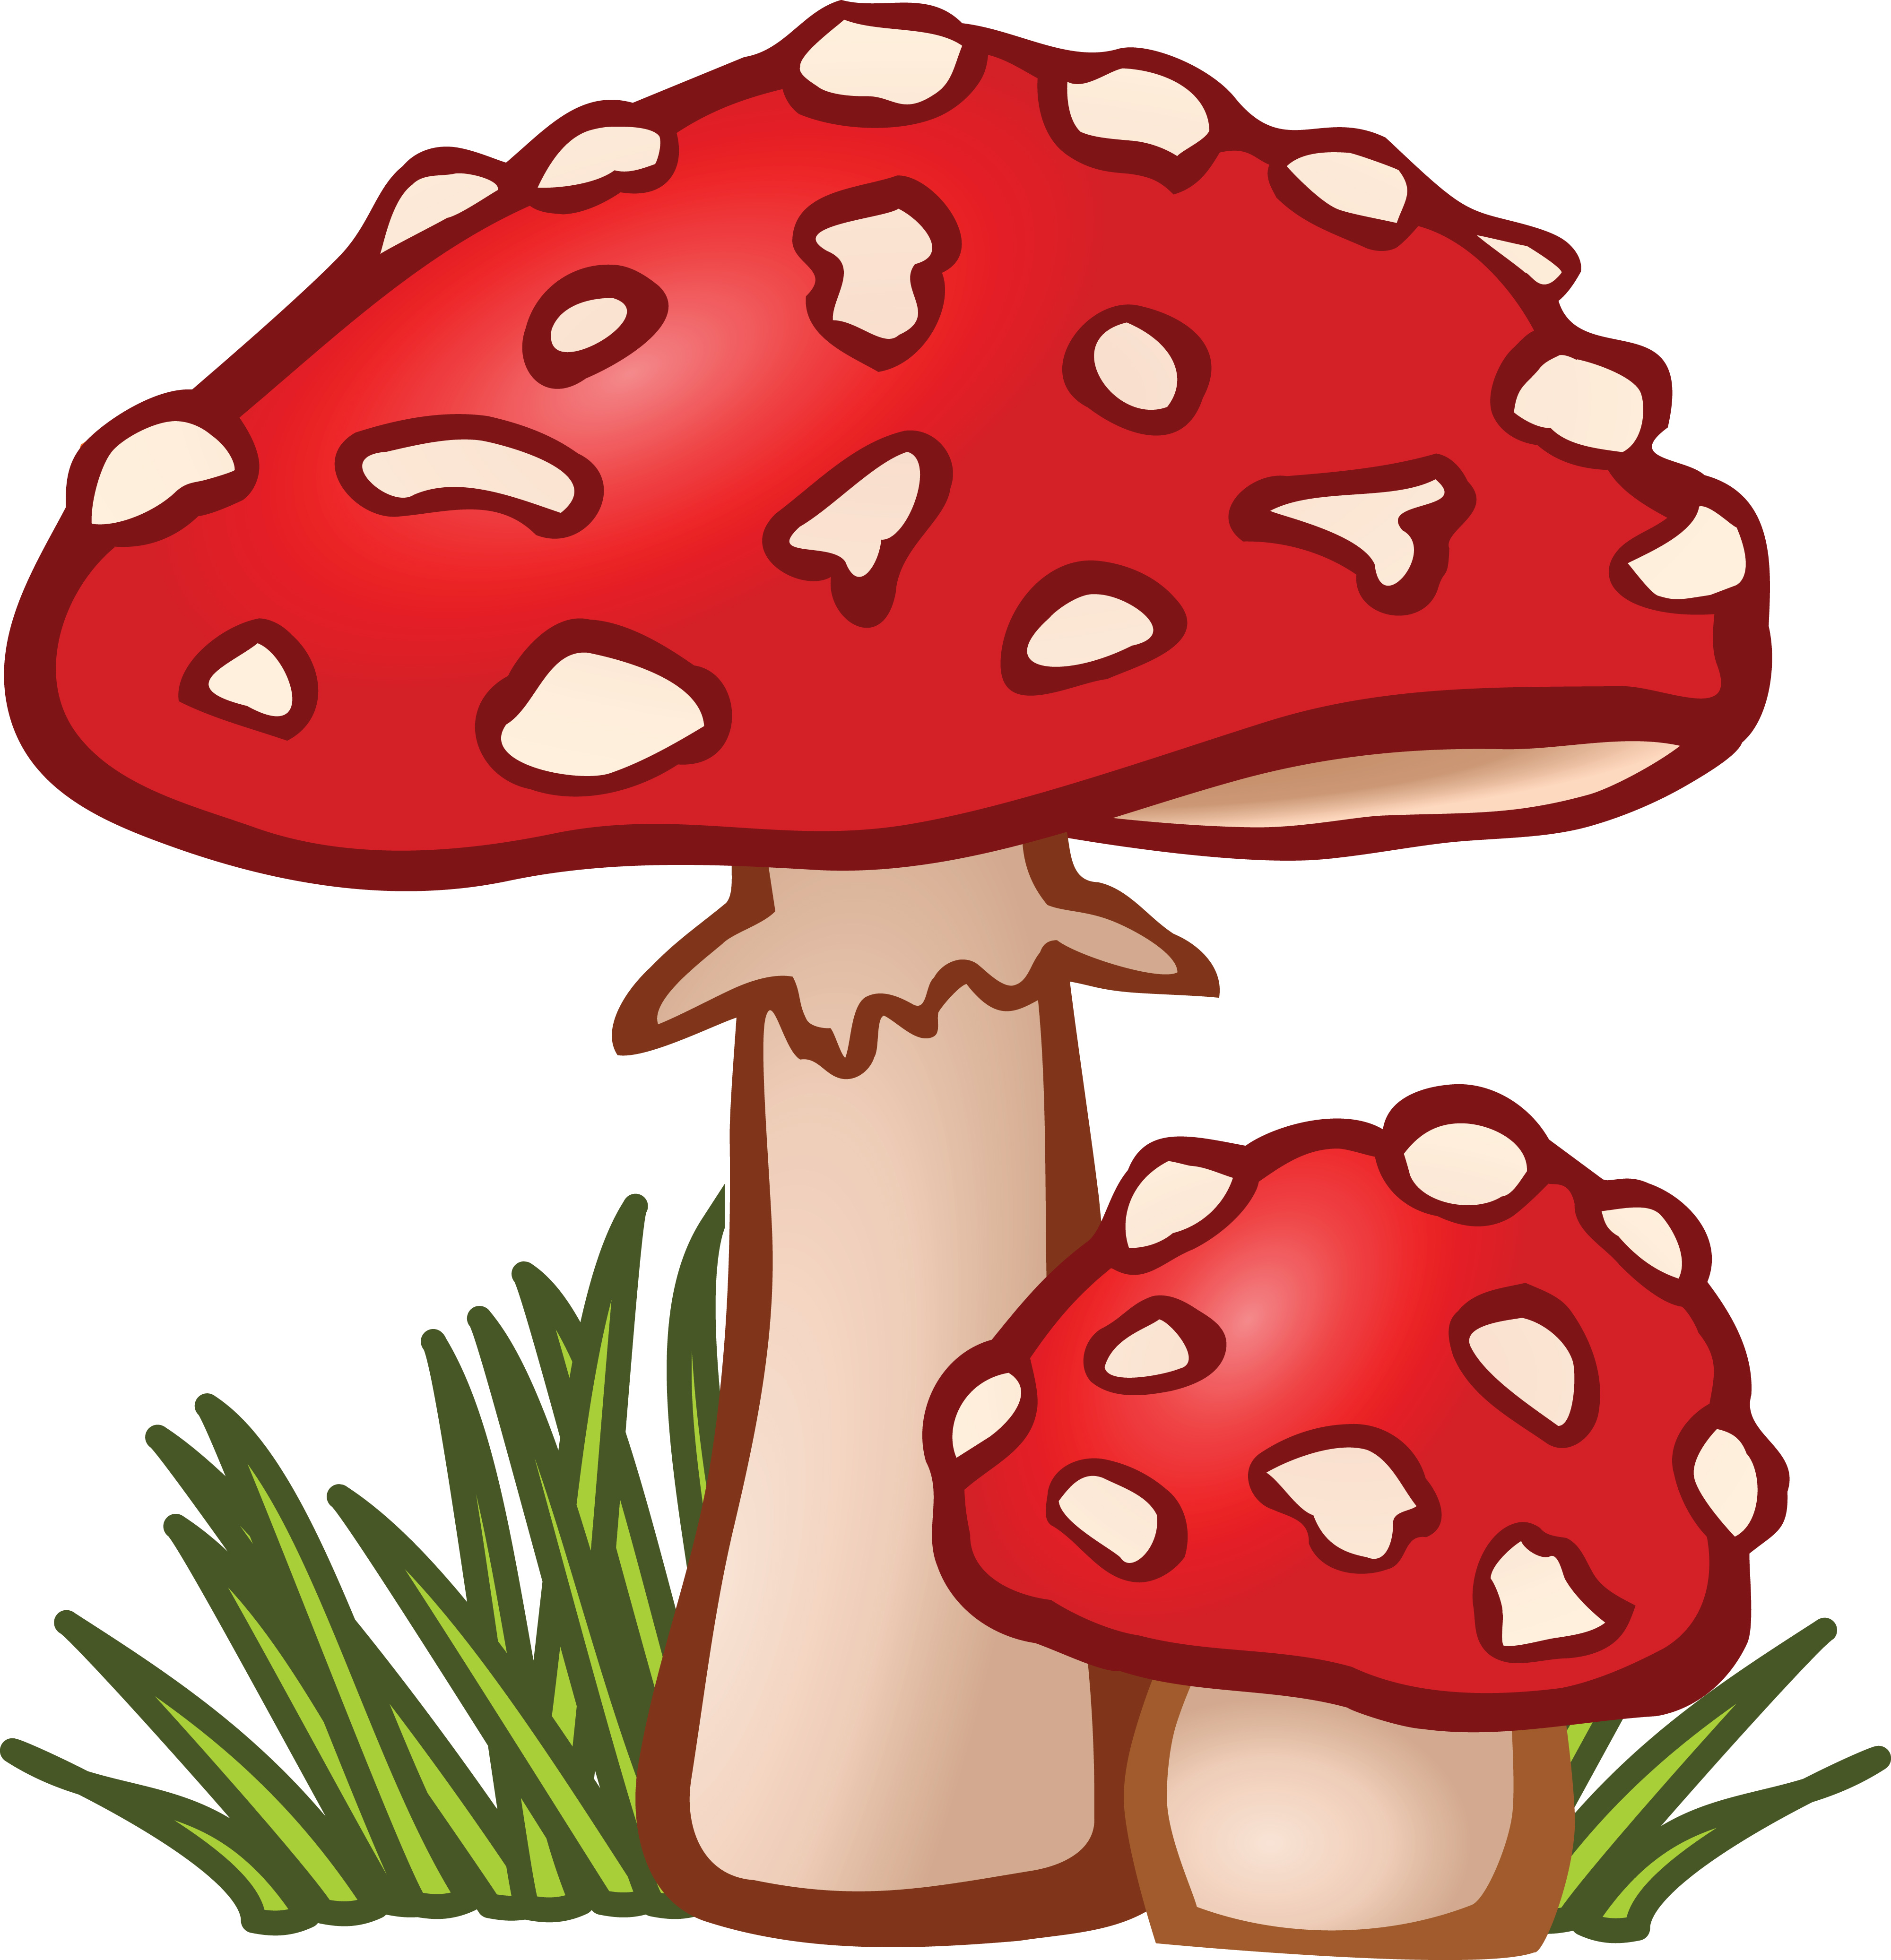 4000x4147 Collection Of Mushroom Clipart Images High Quality, Free